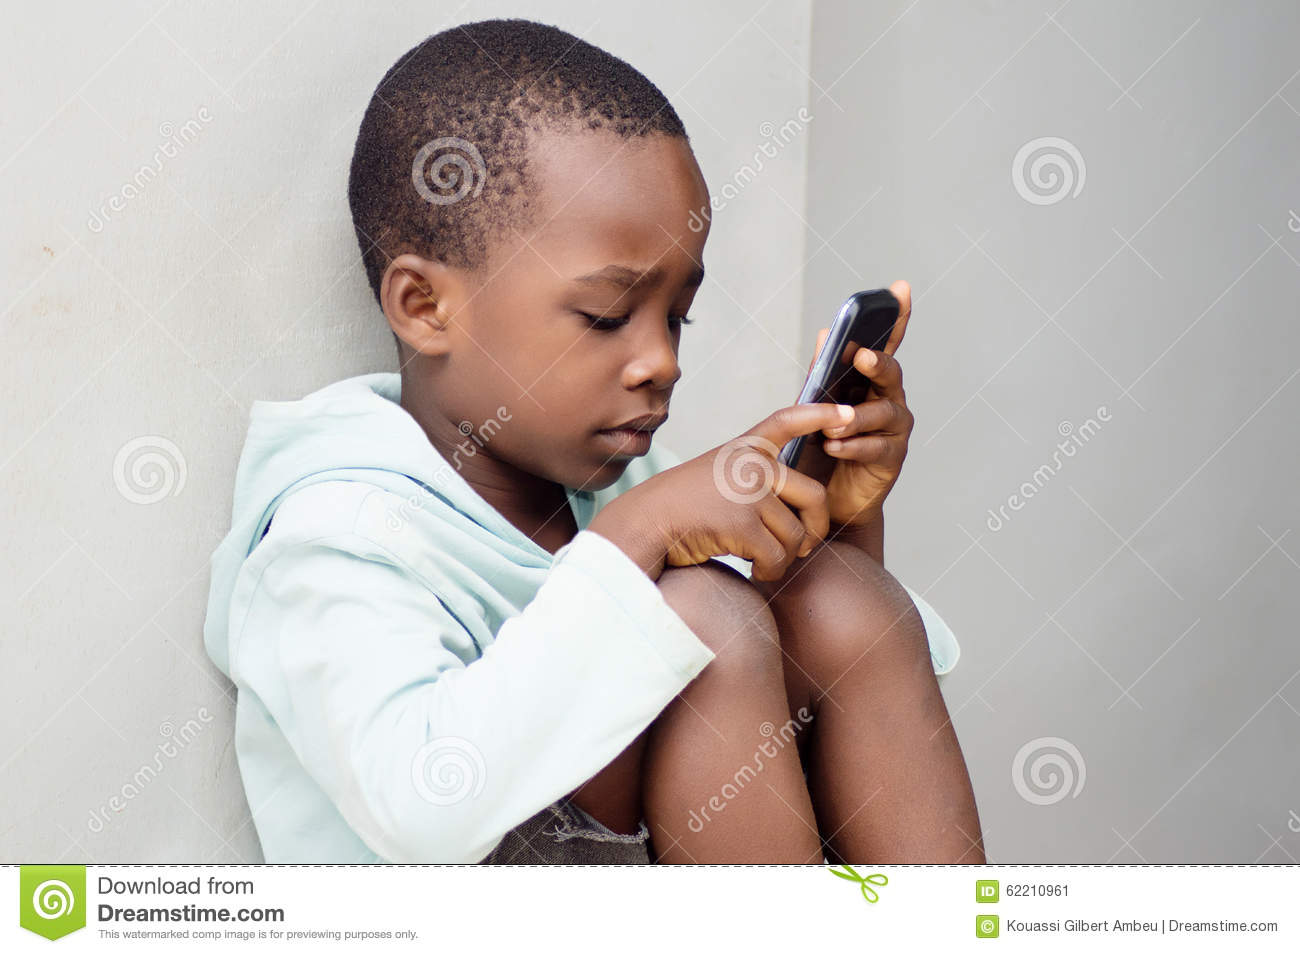 Child handling a mobile phone.